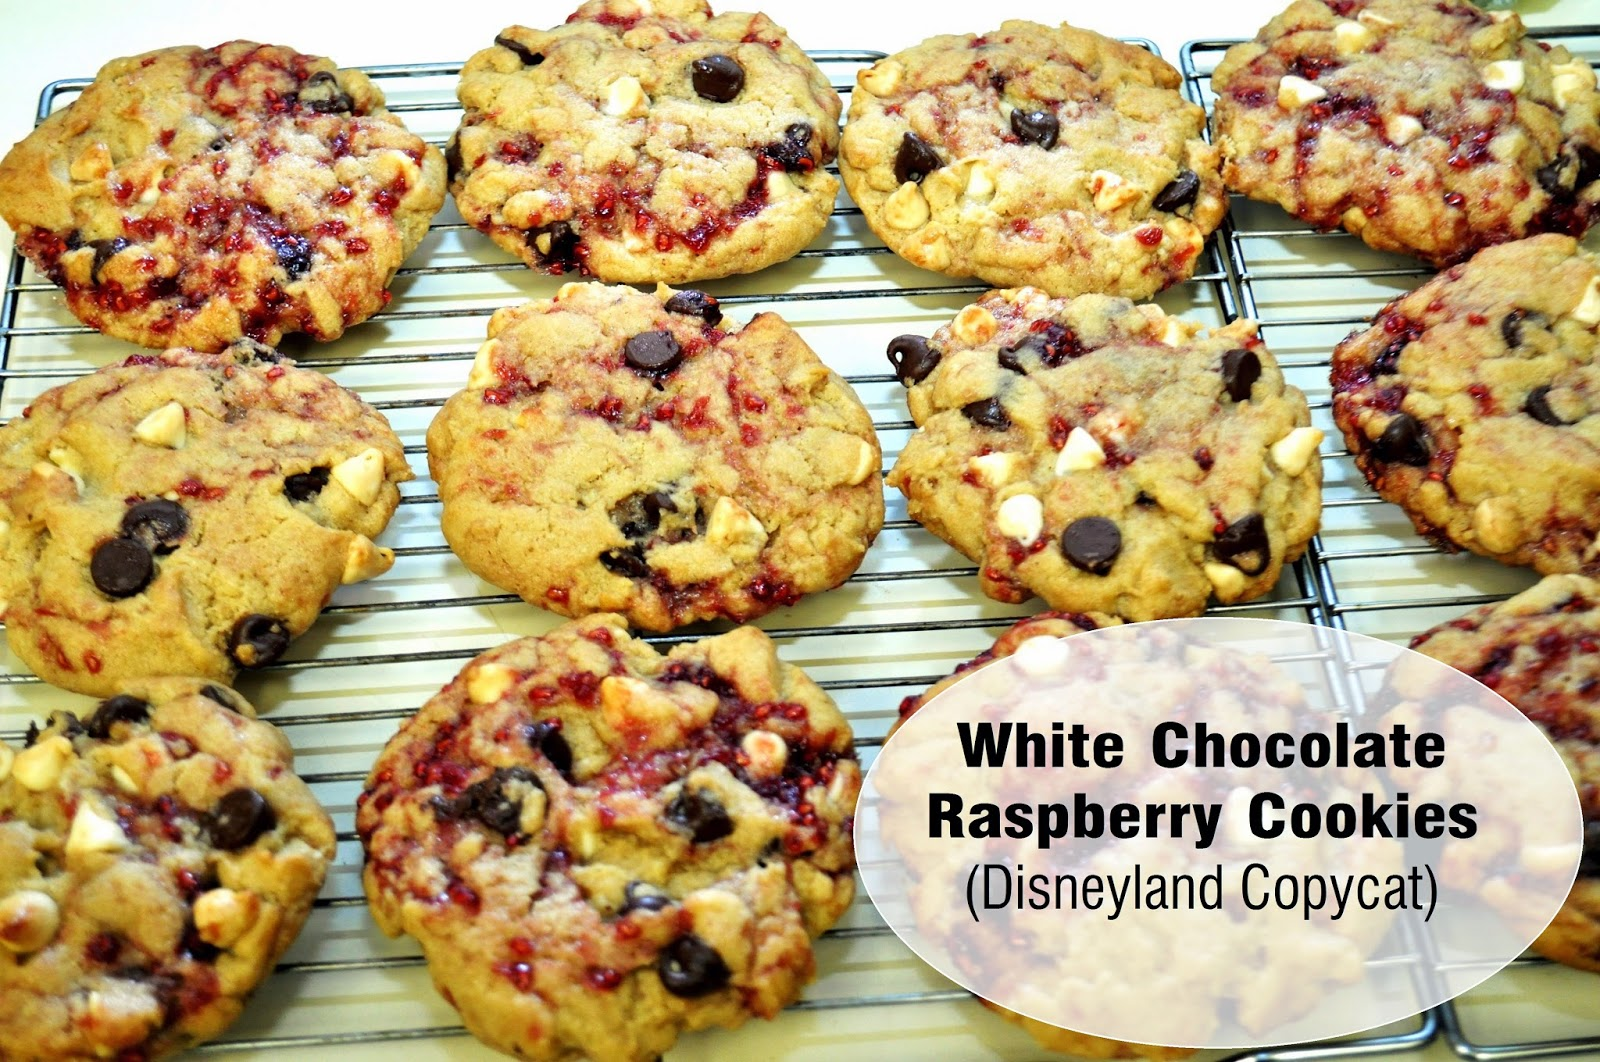 White Chocolate Raspberry Cookies (Disneyland Copycat) | The Grateful ...